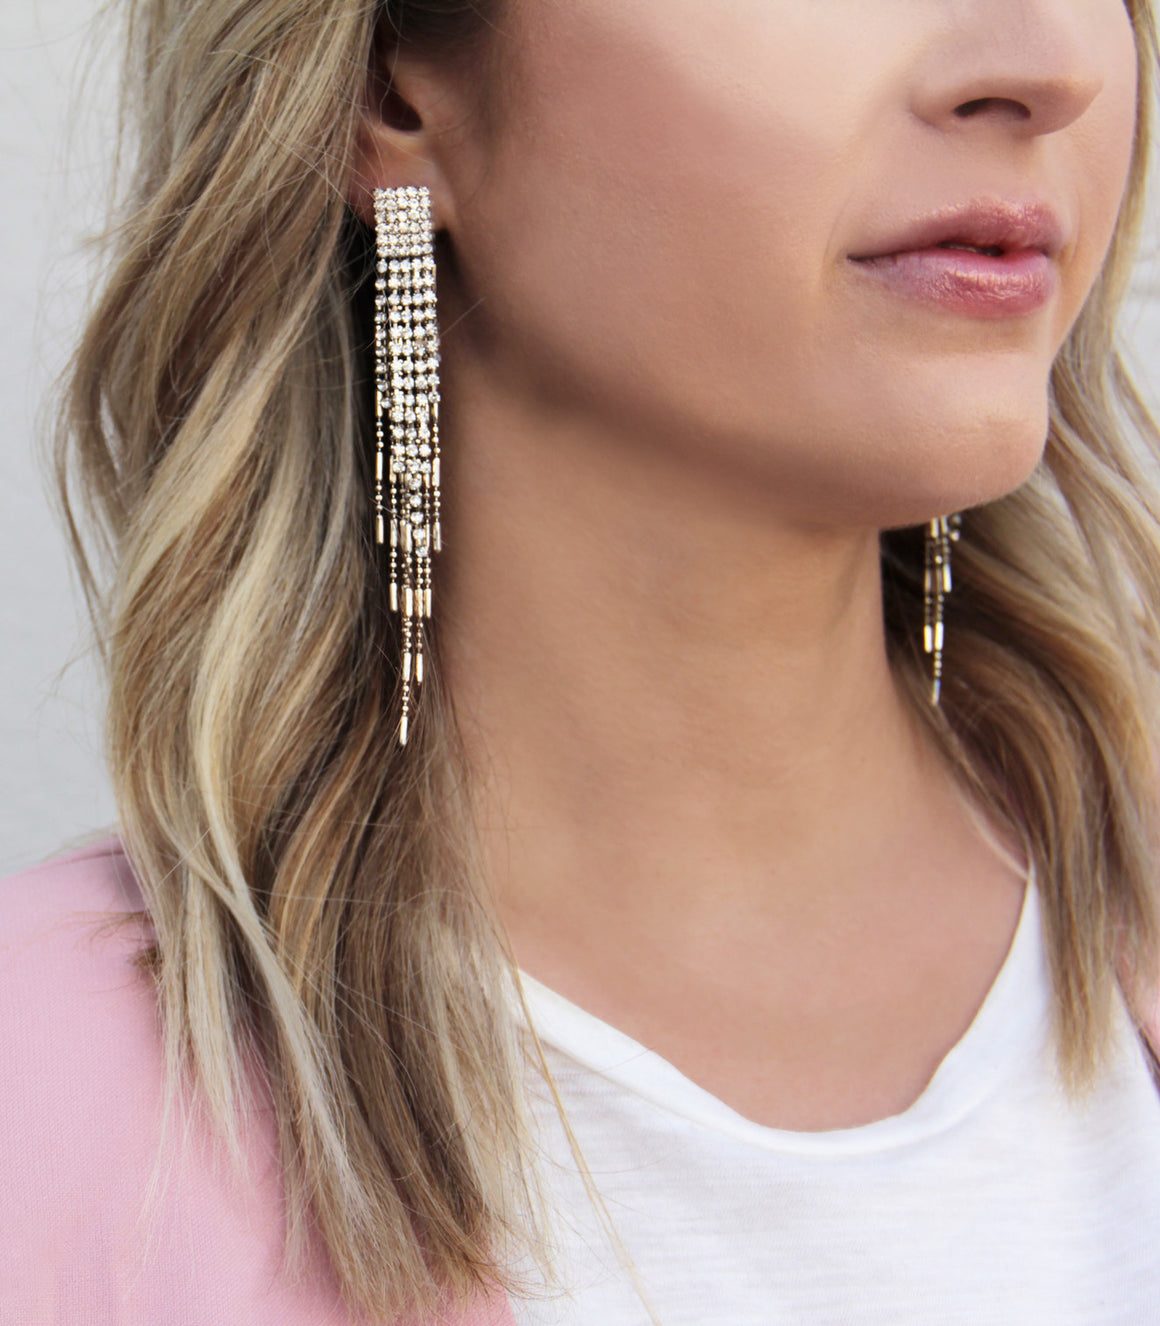 Dramatic dangling rhinestone fringe earrings